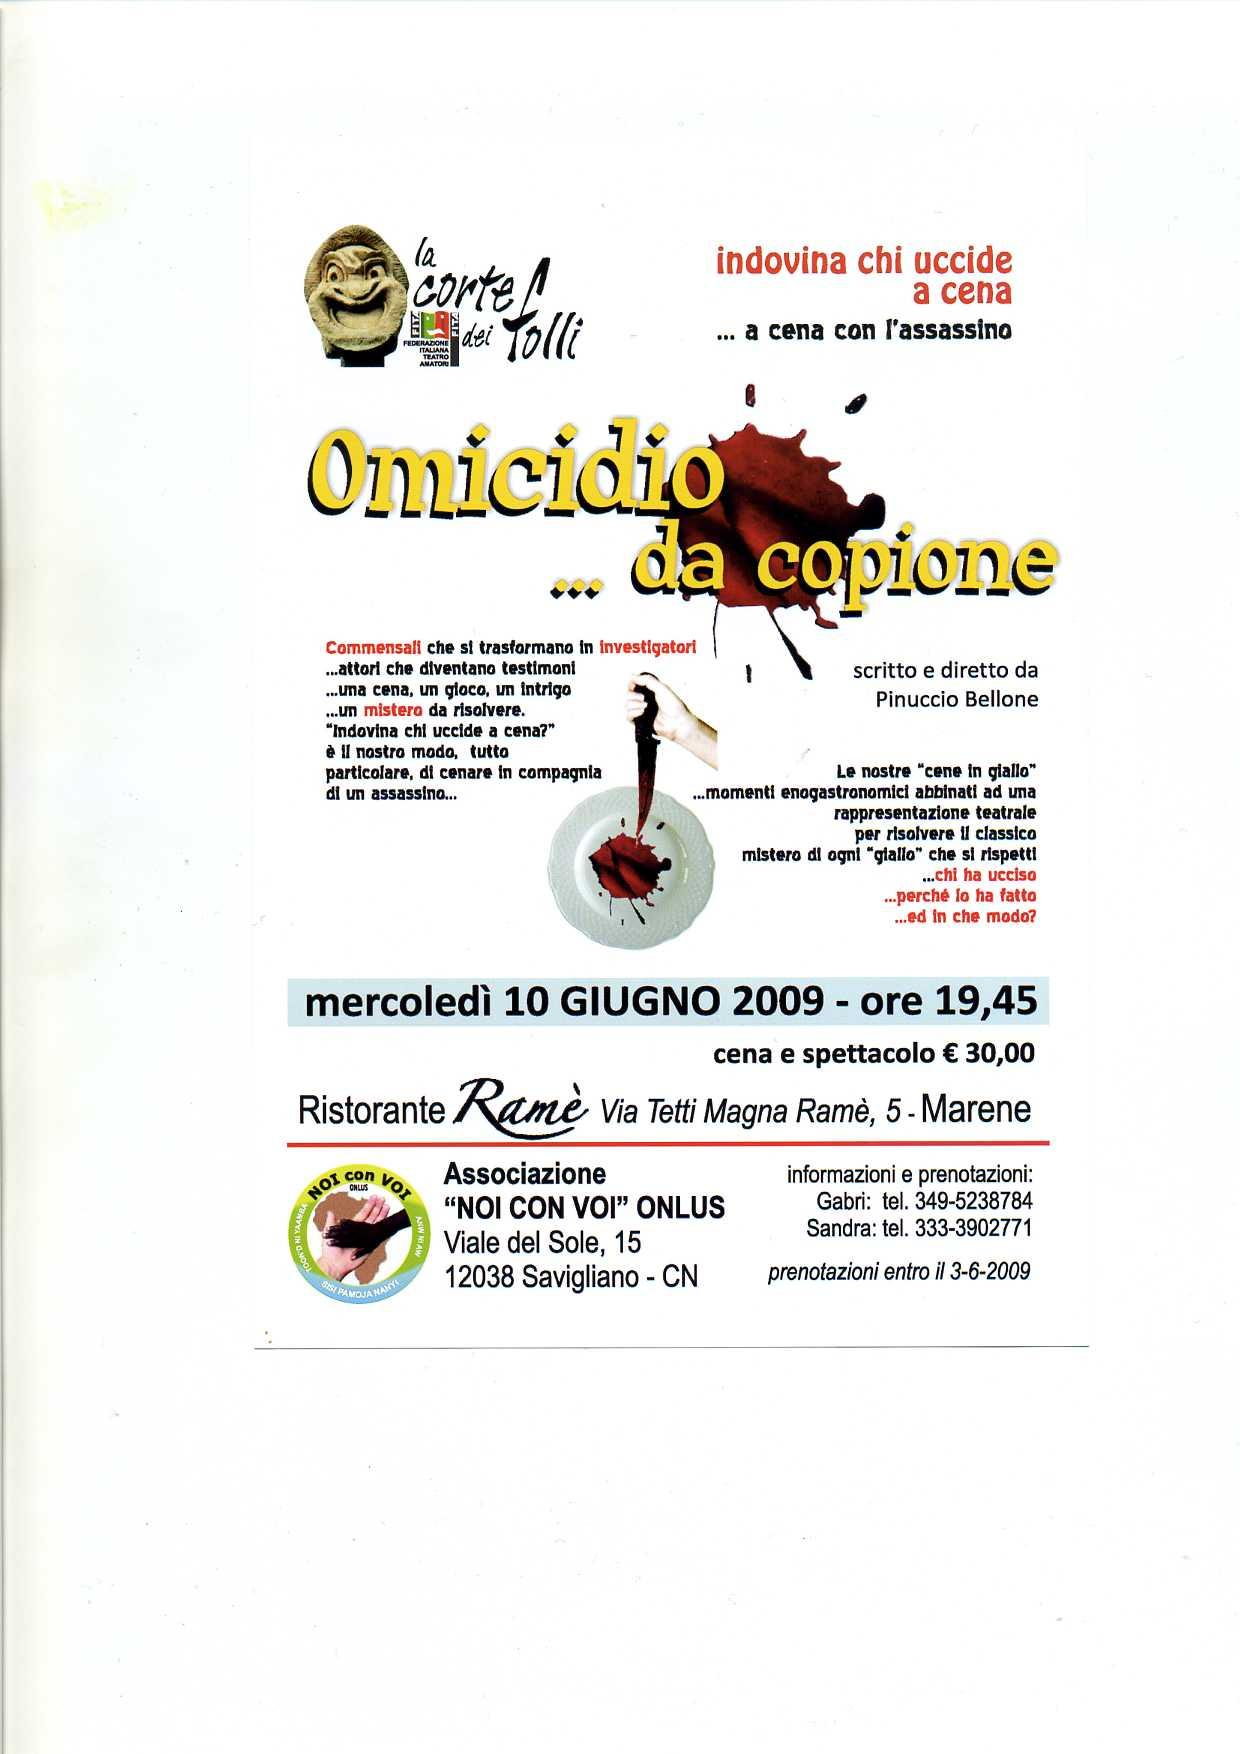 10 giugno 2009: A cena con l'assassino